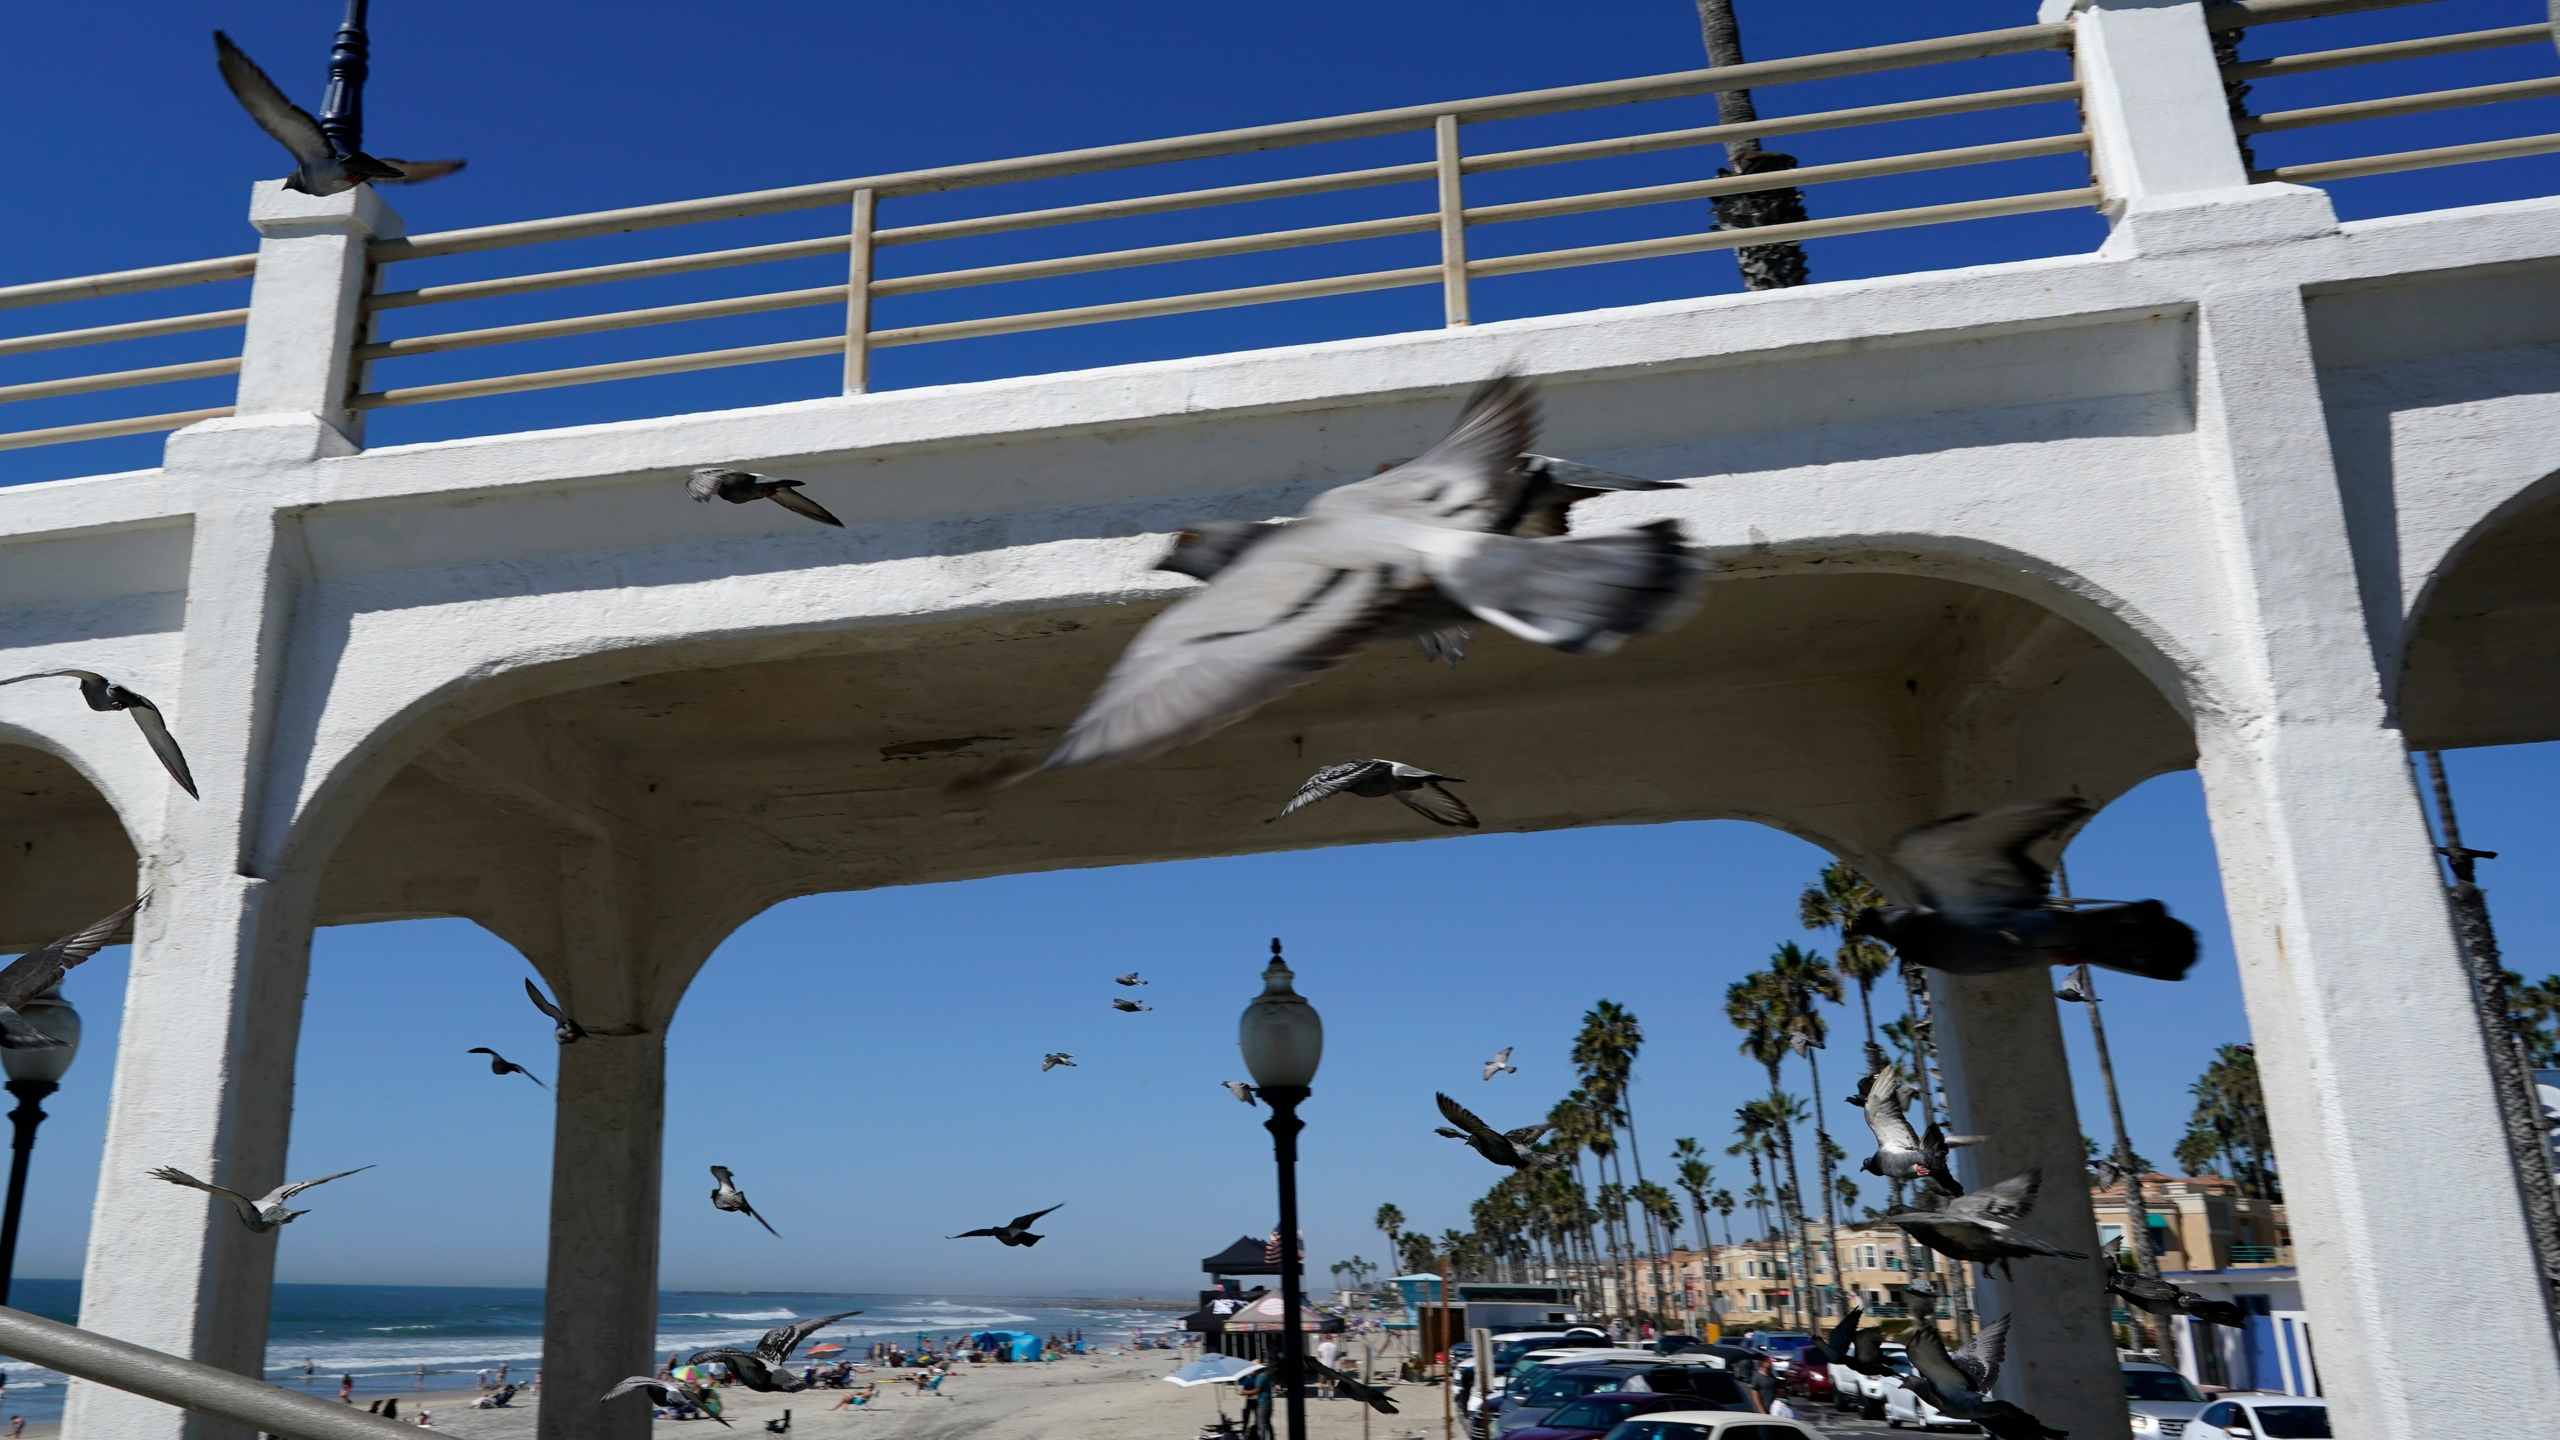 Birds fly past a bridge connecting the Oceanside pier to Pacific Street Friday, Oct. 15, 2021, in Oceanside, Calif. (AP Photo/Gregory Bull)